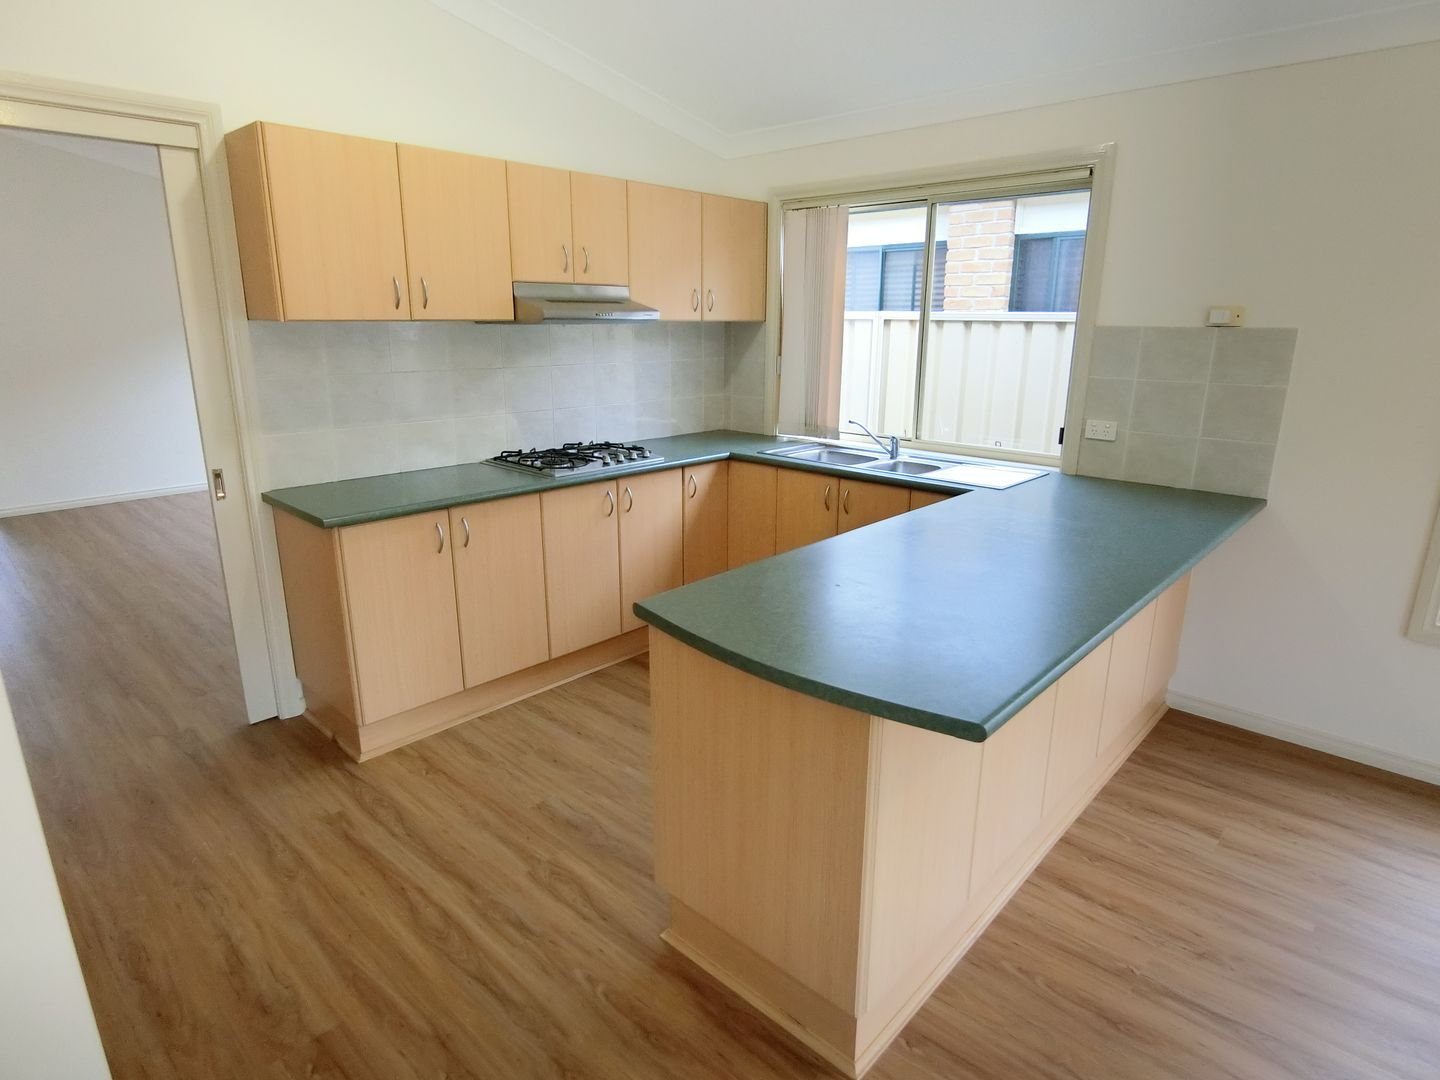 105 Manorhouse Boulevard, Quakers Hill NSW 2763, Image 2